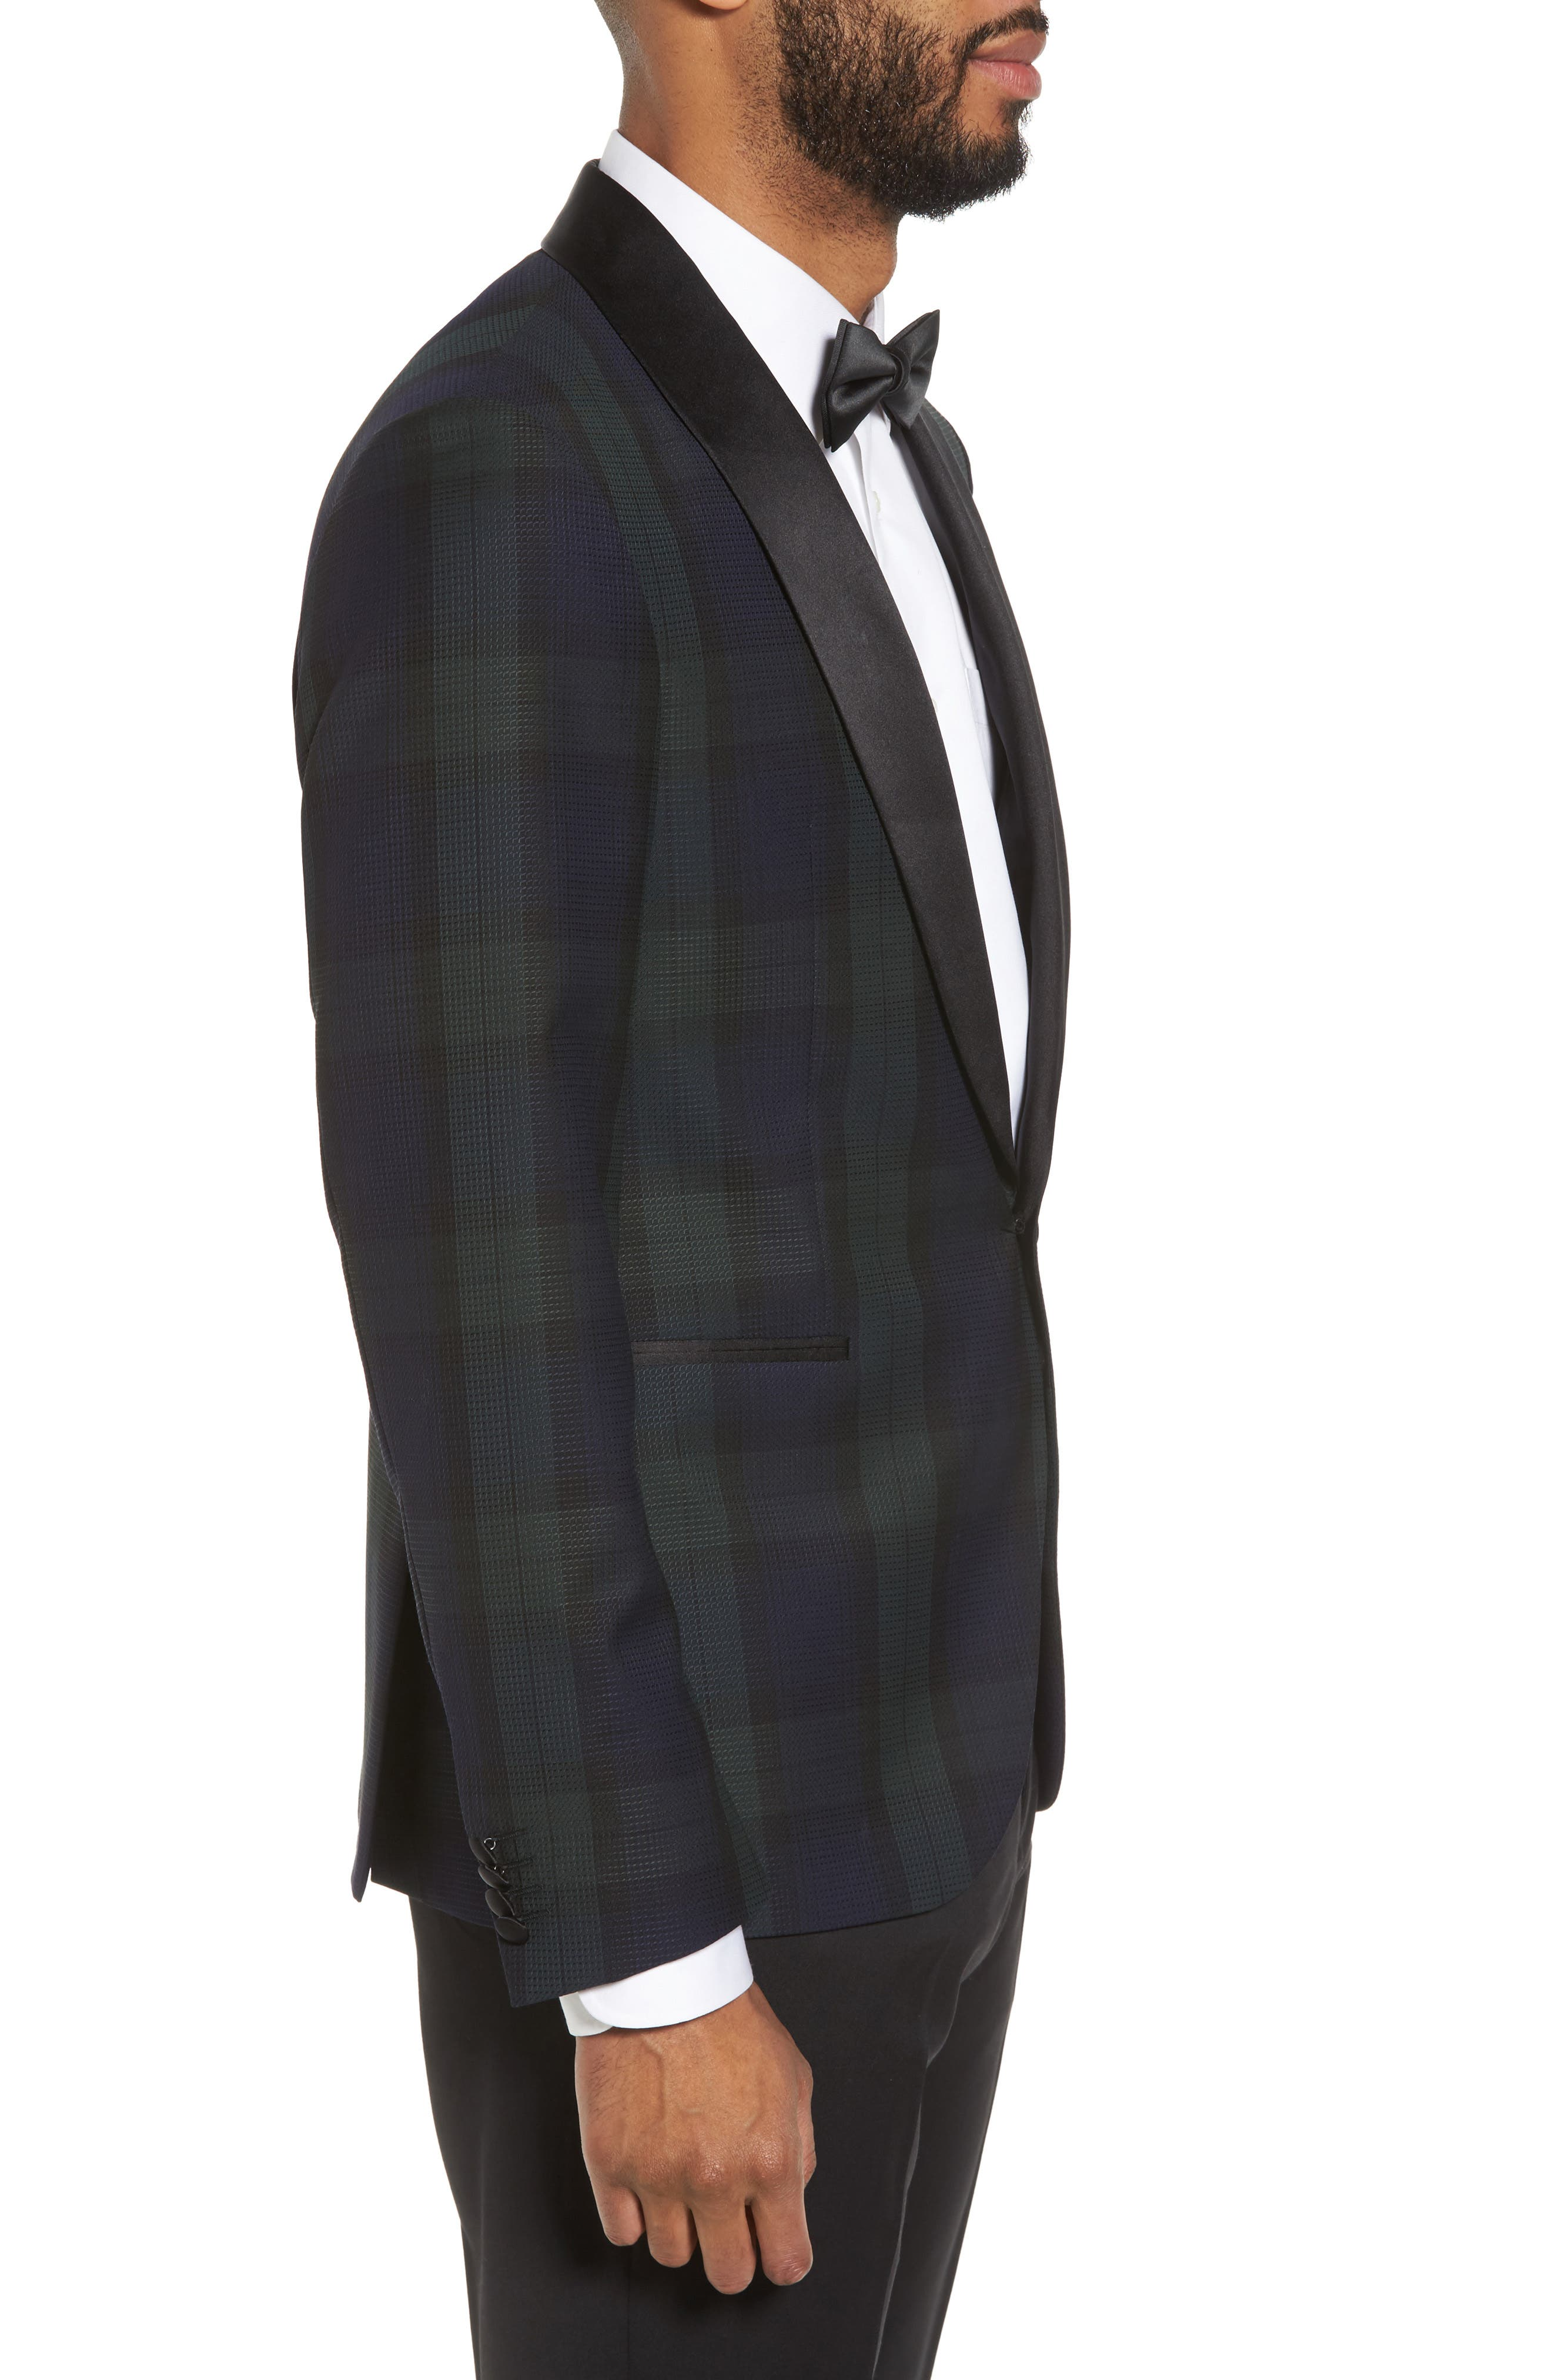 Nemir Classic Fit Wool Dinner Jacket,                             Alternate thumbnail 3, color,                             Green